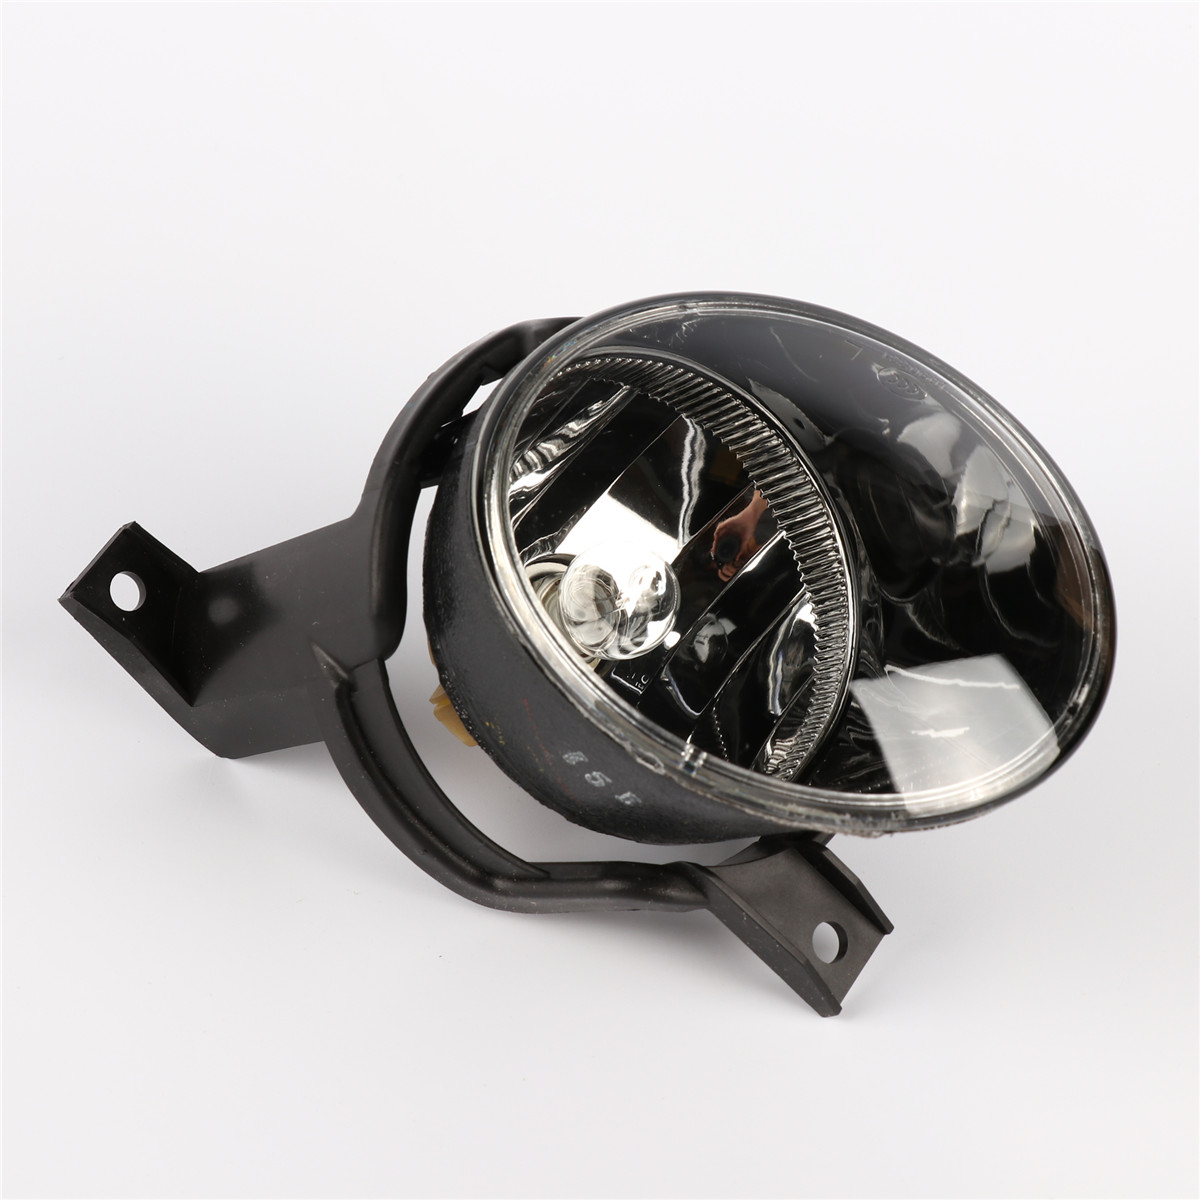 1PCS OEM Front Left Halogen Fog Lamp Light 18G 941 699 B For VW Golf MK6 Jetta MK6 1pcs oem front left halogen fog lamp light 3ad 941 661 for vw passat b7